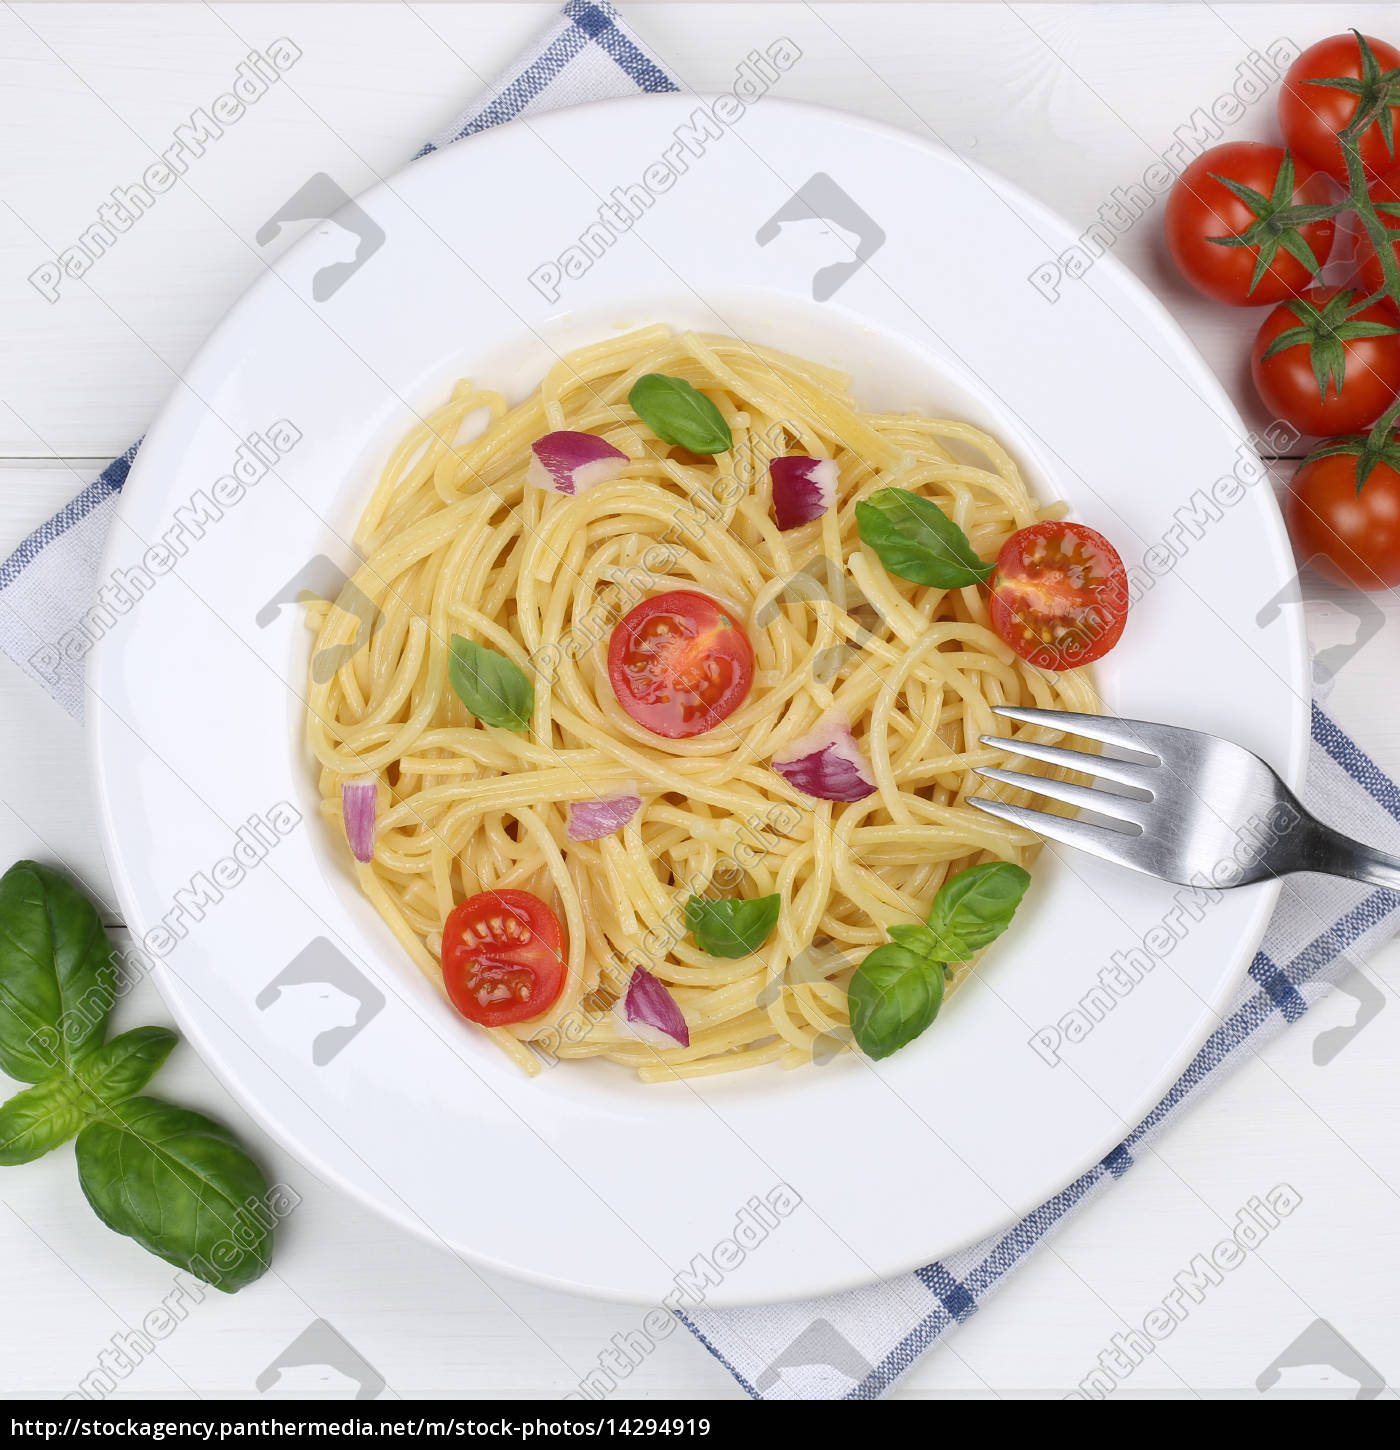 italienisches essen spaghetti mit tomaten nudeln pasta stockfoto 14294919 bildagentur. Black Bedroom Furniture Sets. Home Design Ideas